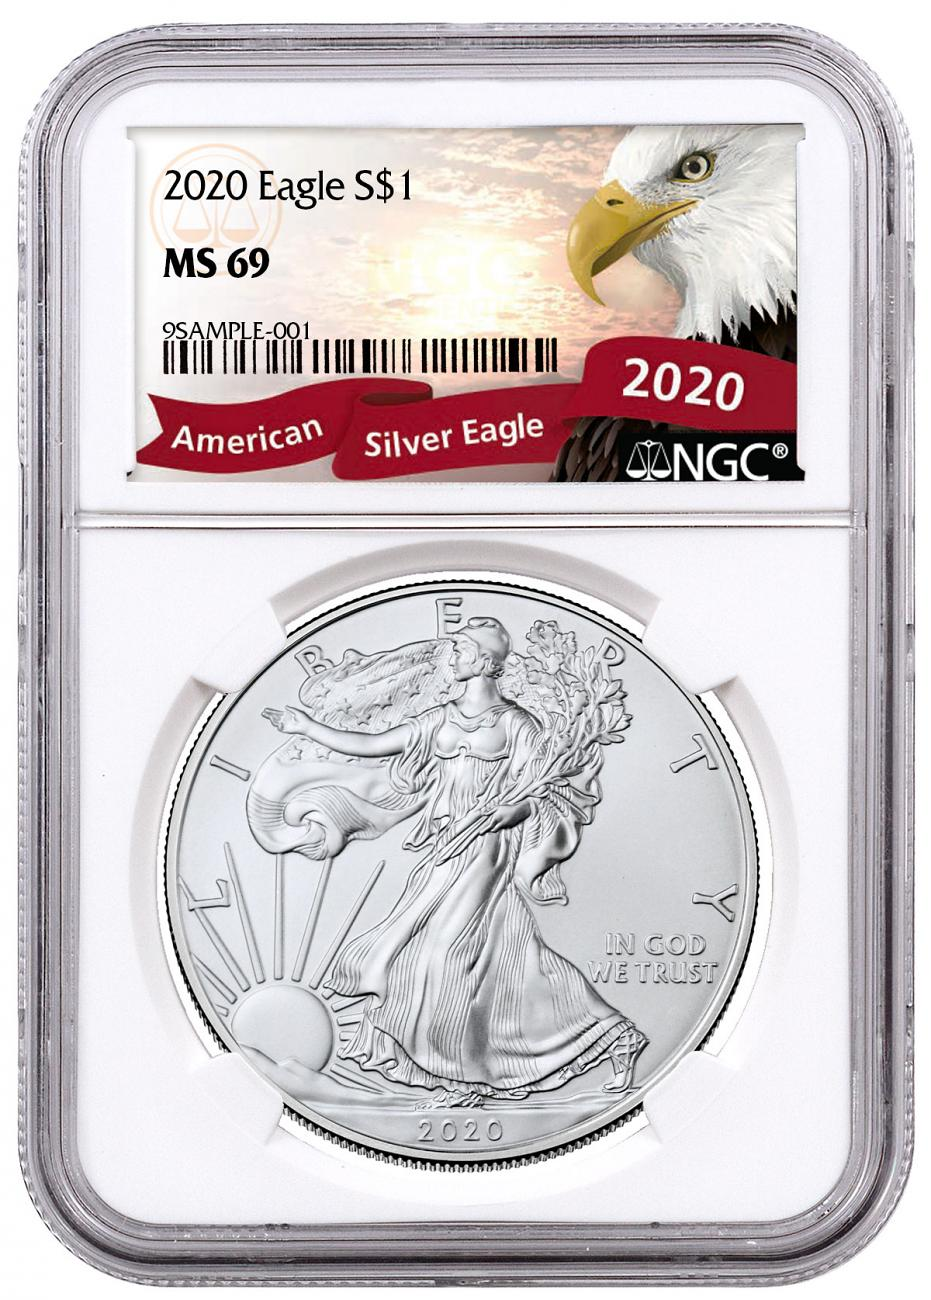 2020 1 oz American Silver Eagle $1 Coin NGC MS69 Exclusive Eagle Label